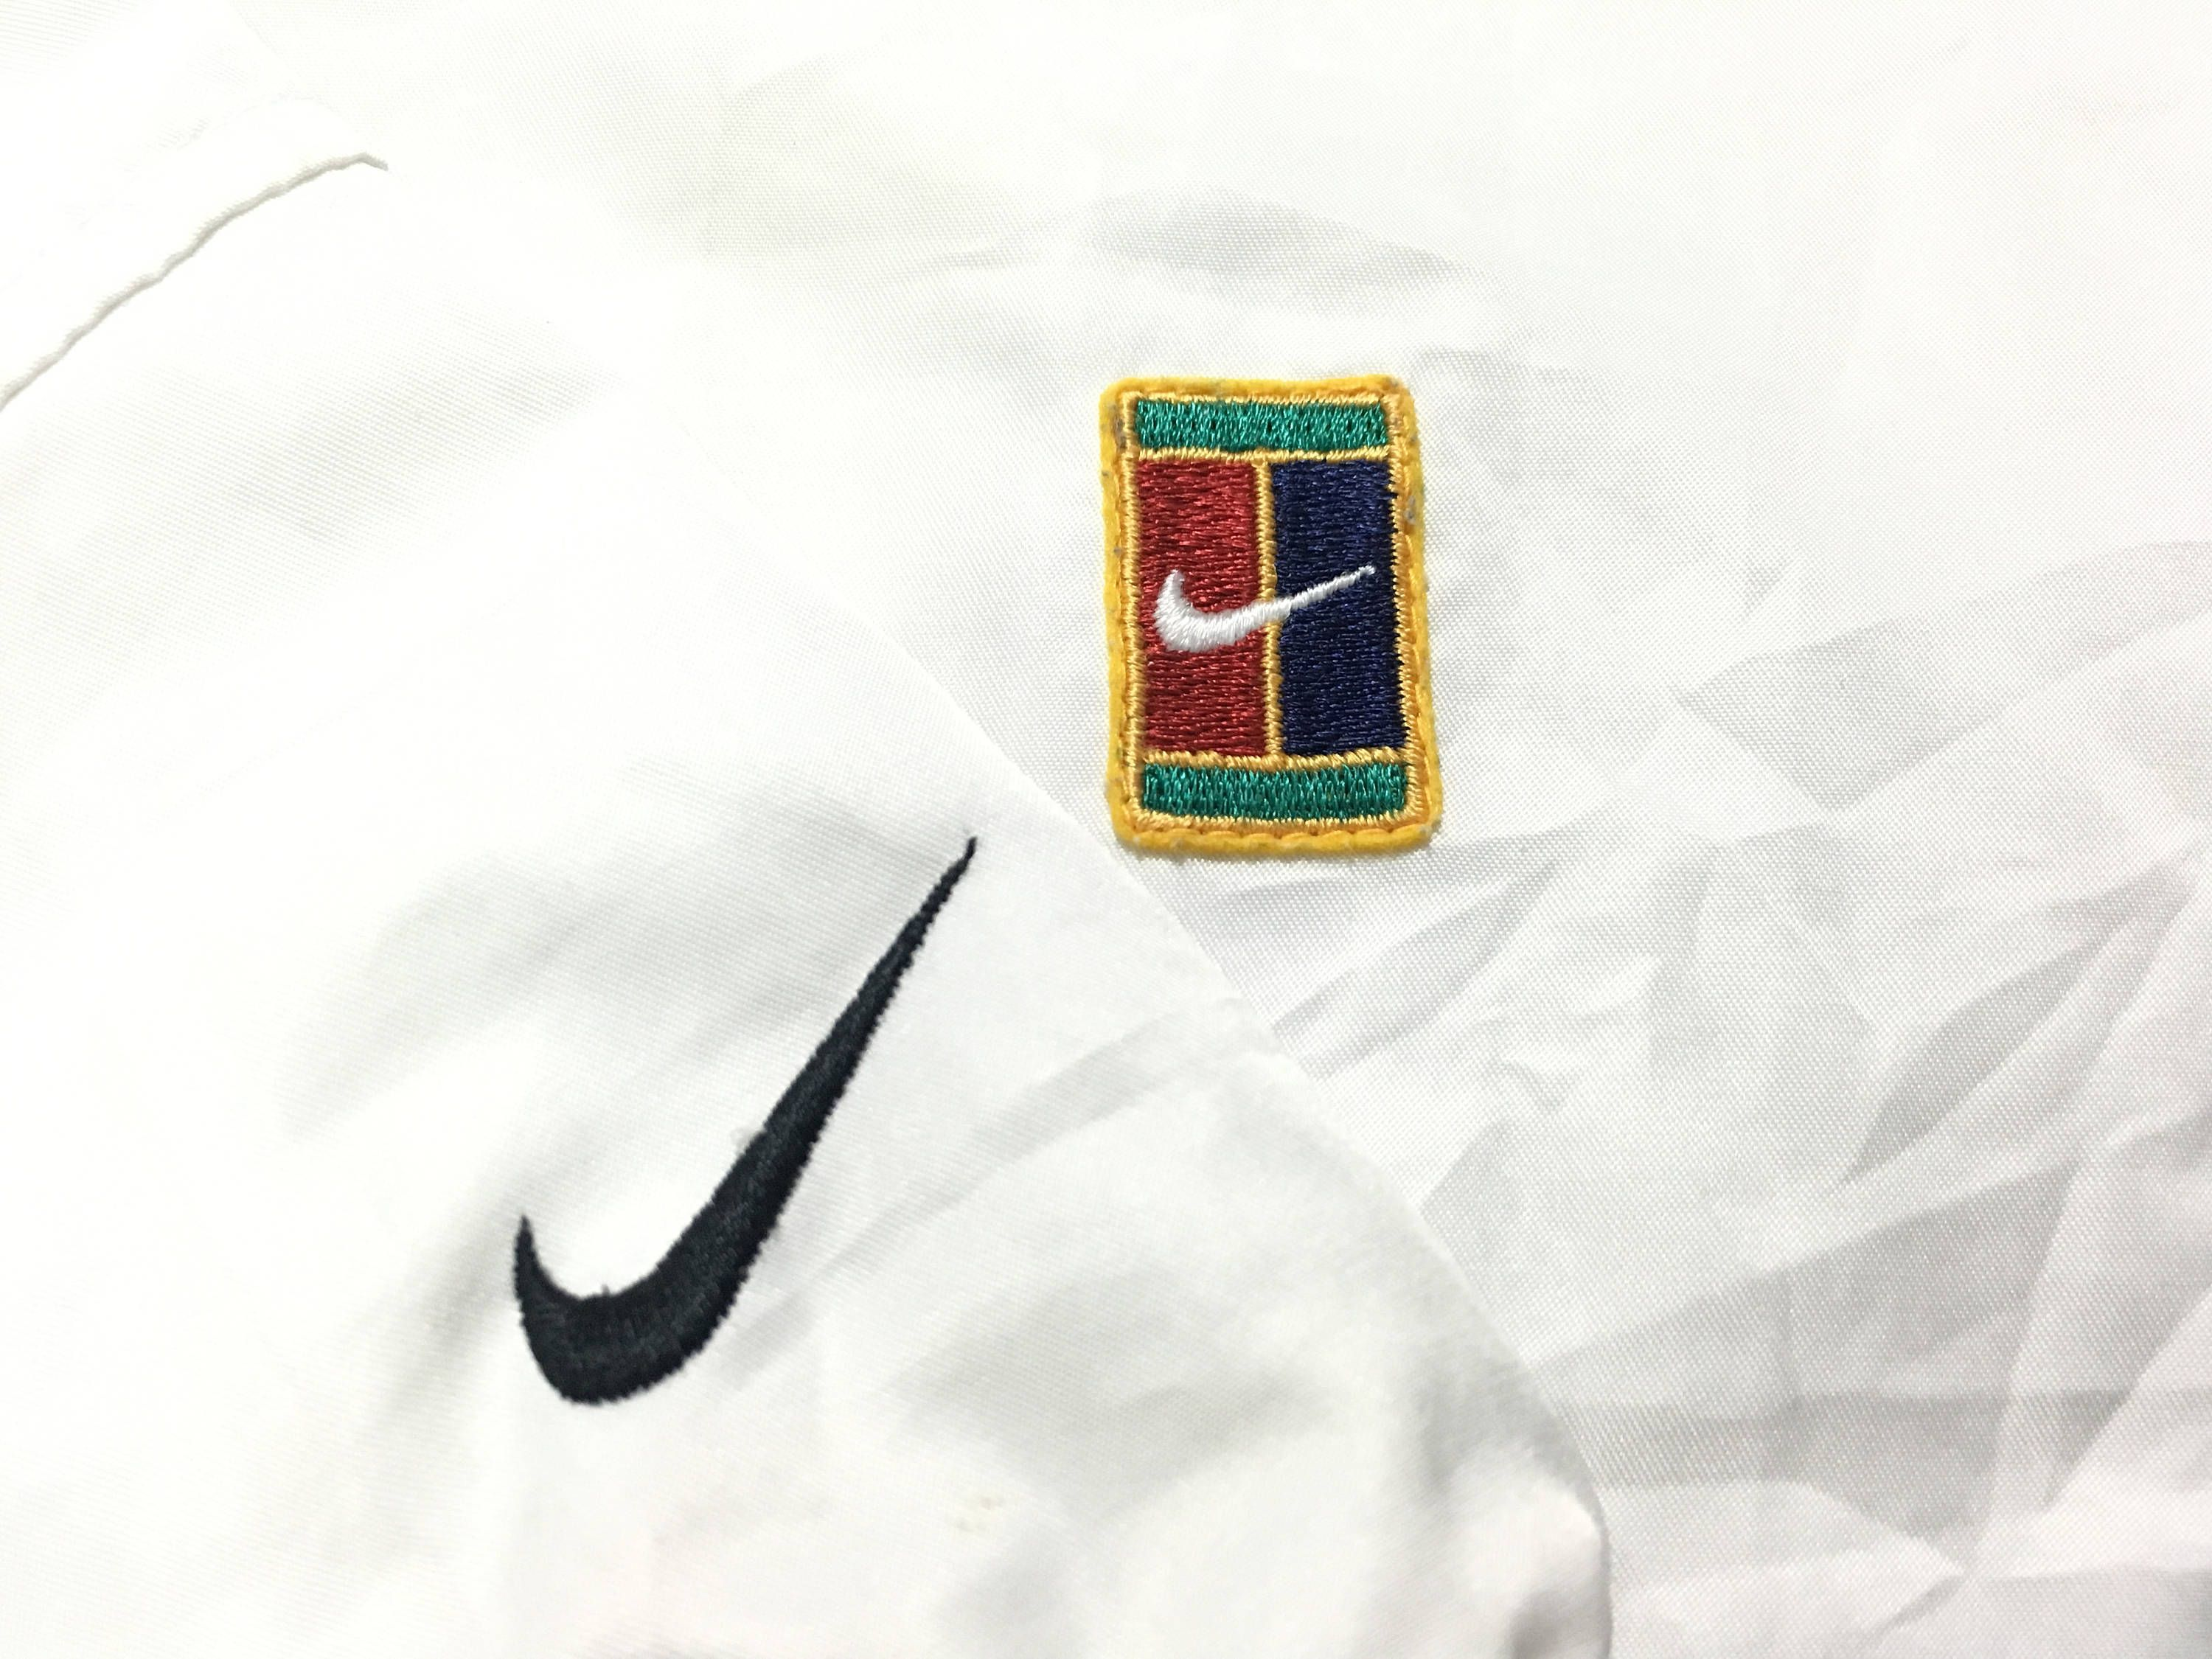 48e3ebe8 Vintage Nike jacket windbreaker tennis court swoosh logo Size L Good  condition by AlivevintageShop on Etsy